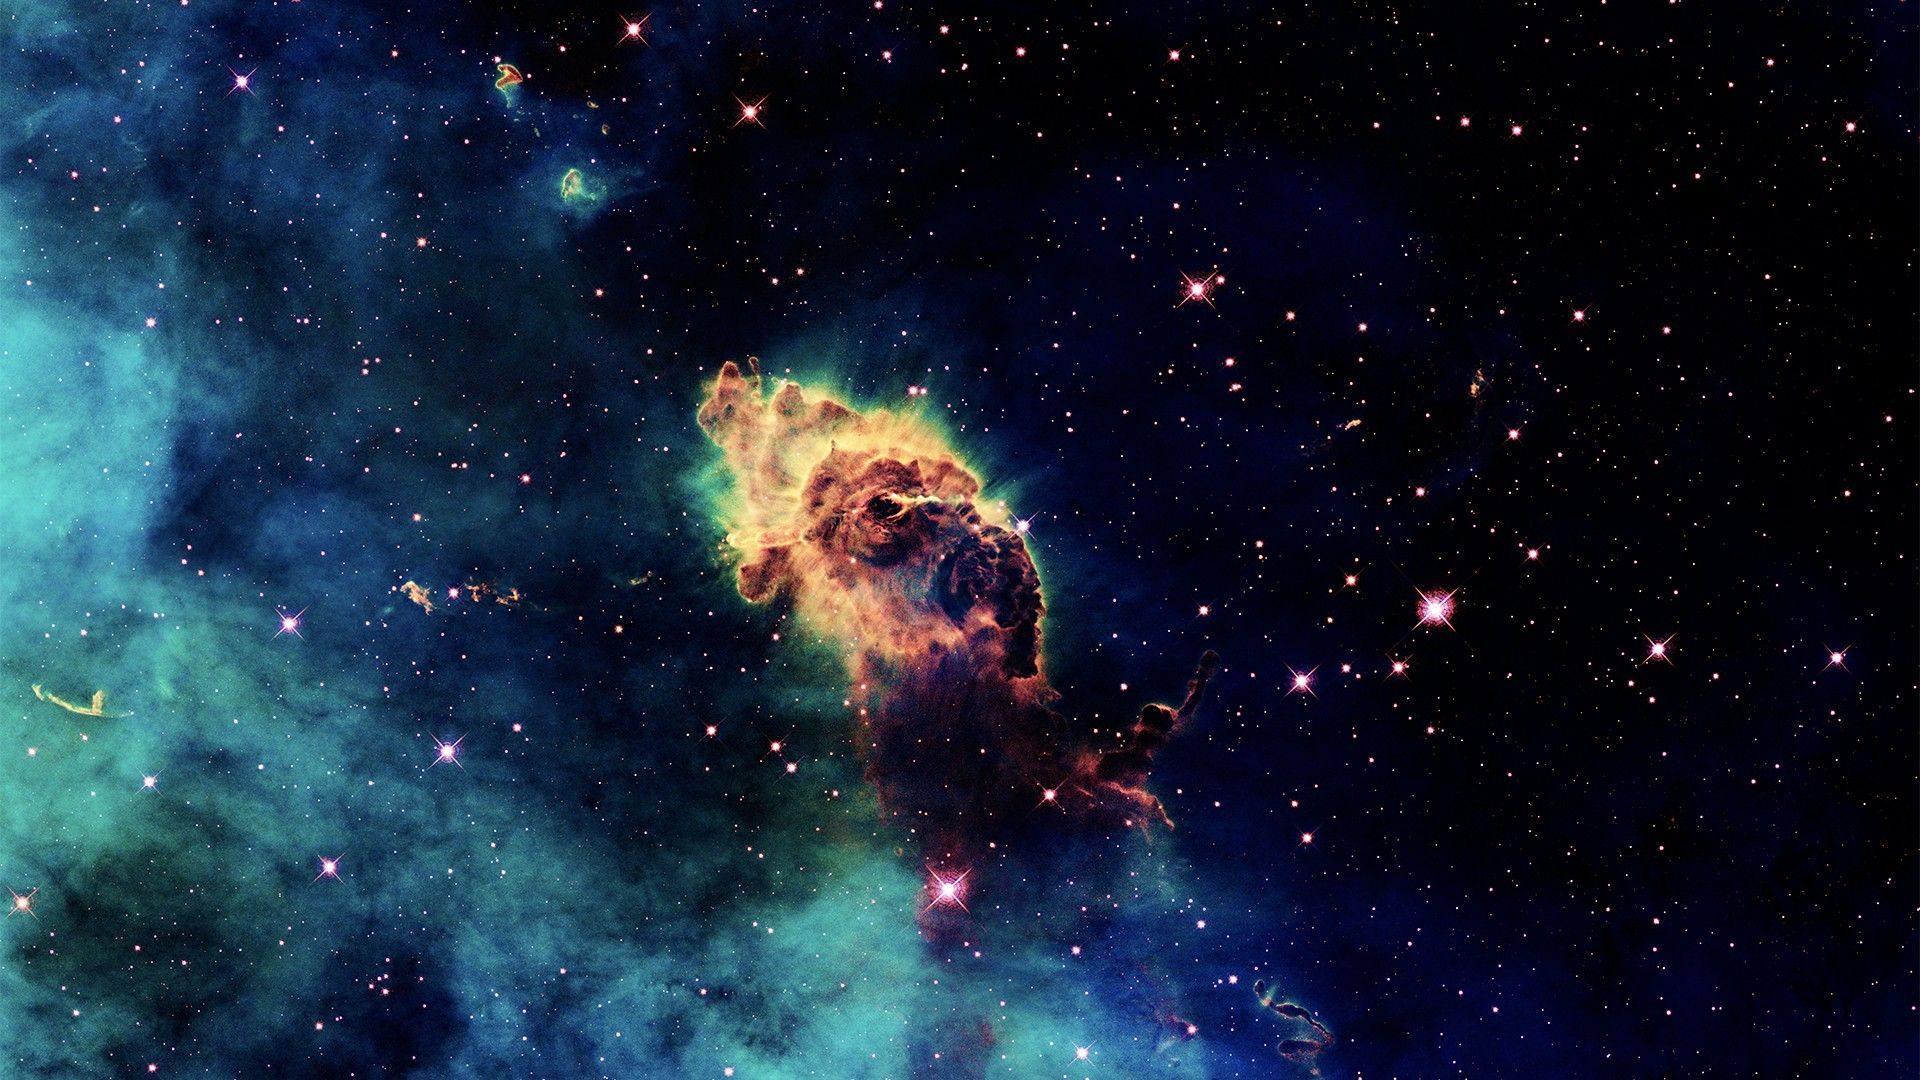 Astronomy wallpaper picture